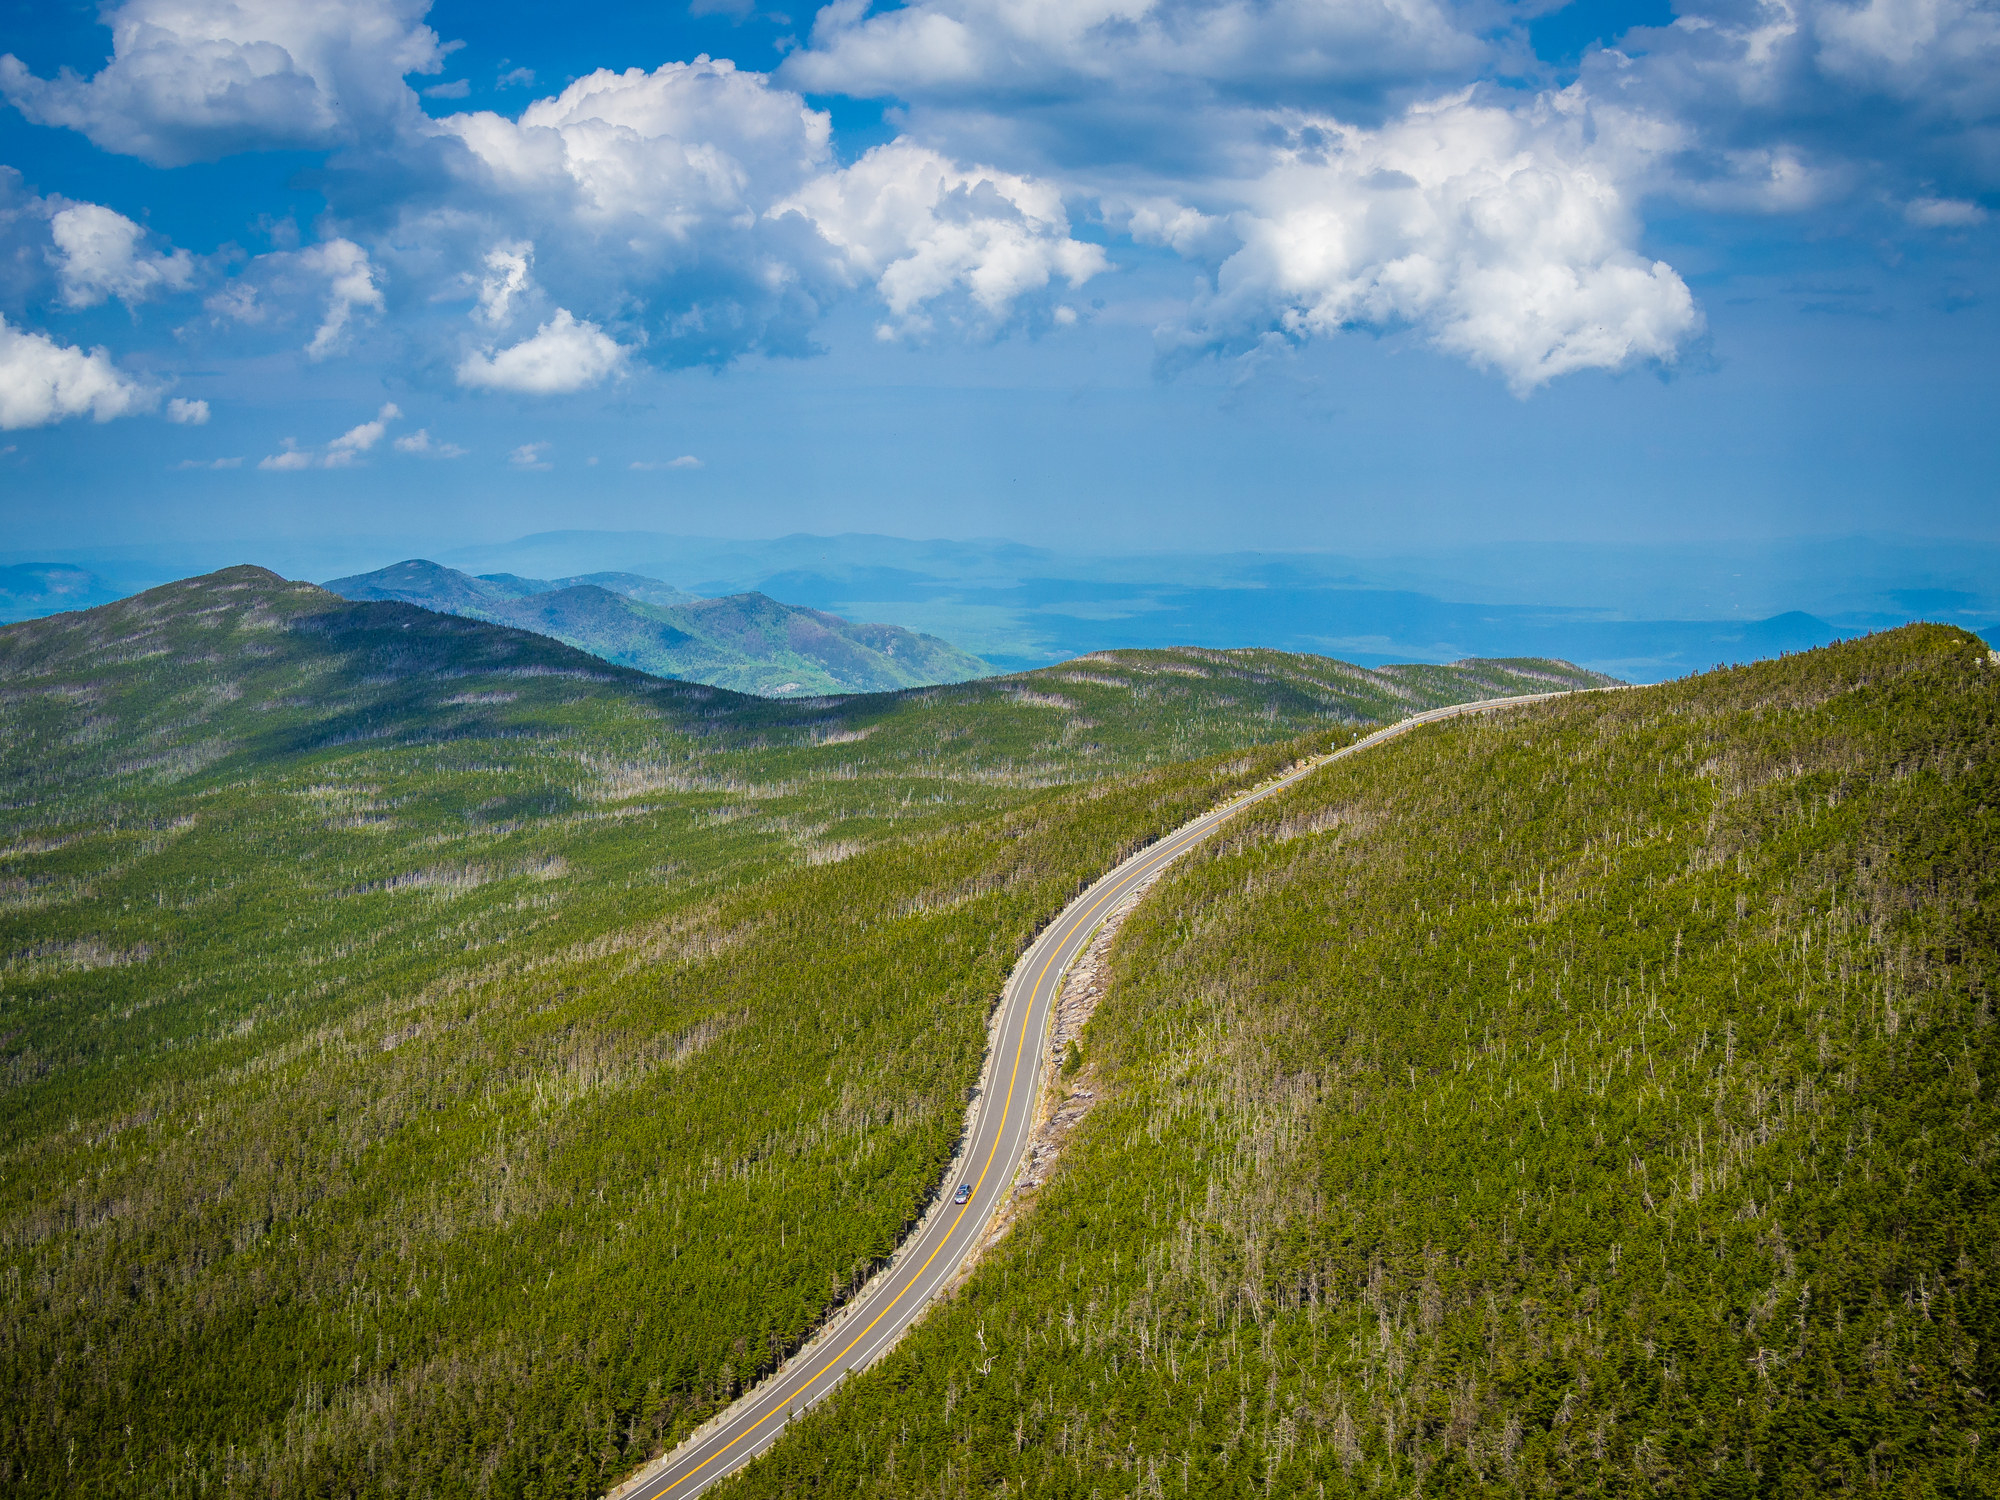 aerial view of road winding through Whiteface mountain, surrounded by greenery in Adirondack, NY, USA